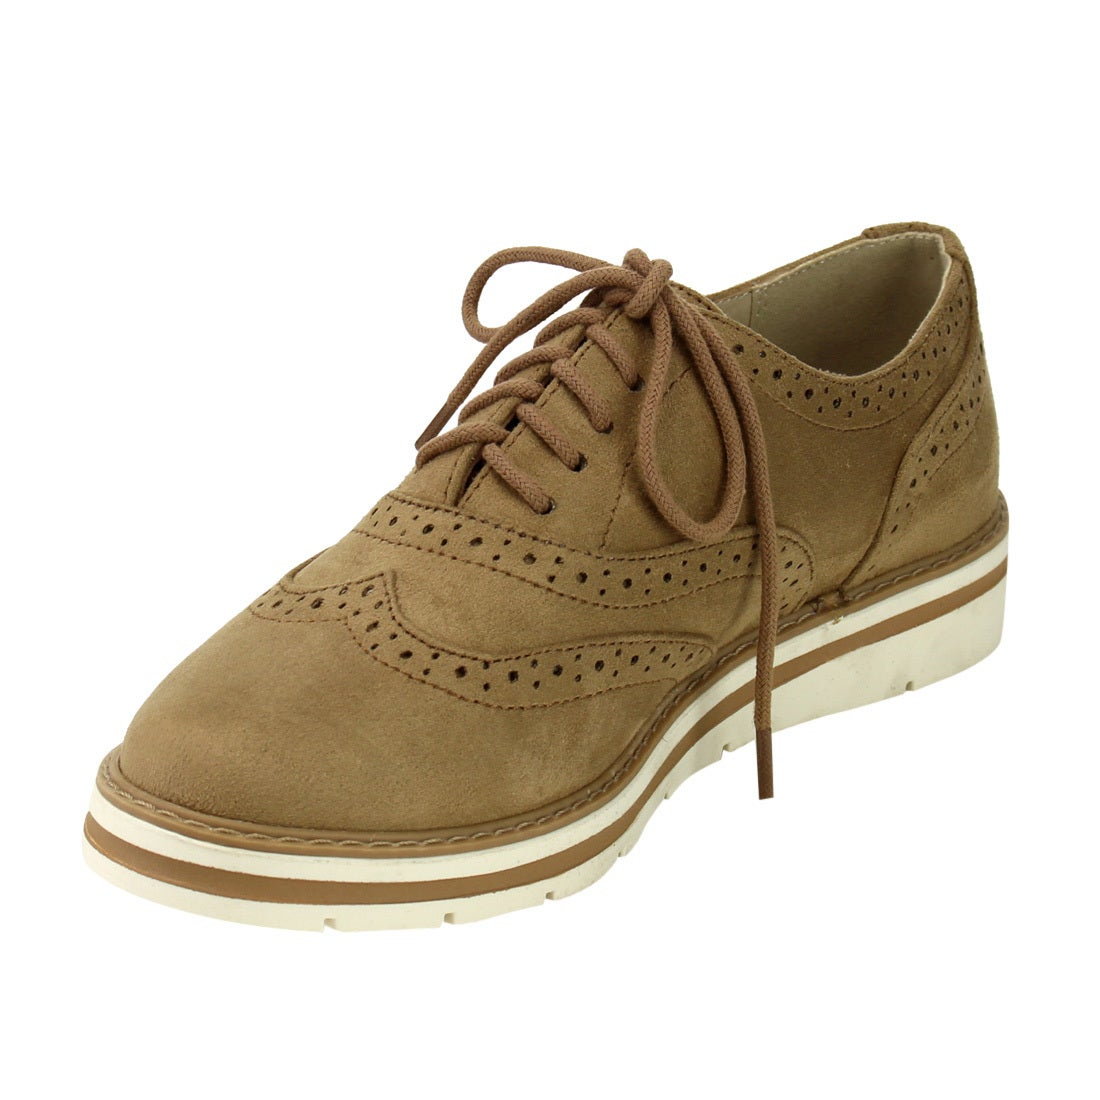 Soda IG04 Women's Lace Up Perforated Wingtip Stitched Dress Oxfords - Free  Shipping On Orders Over $45 - Overstock.com - 22557580